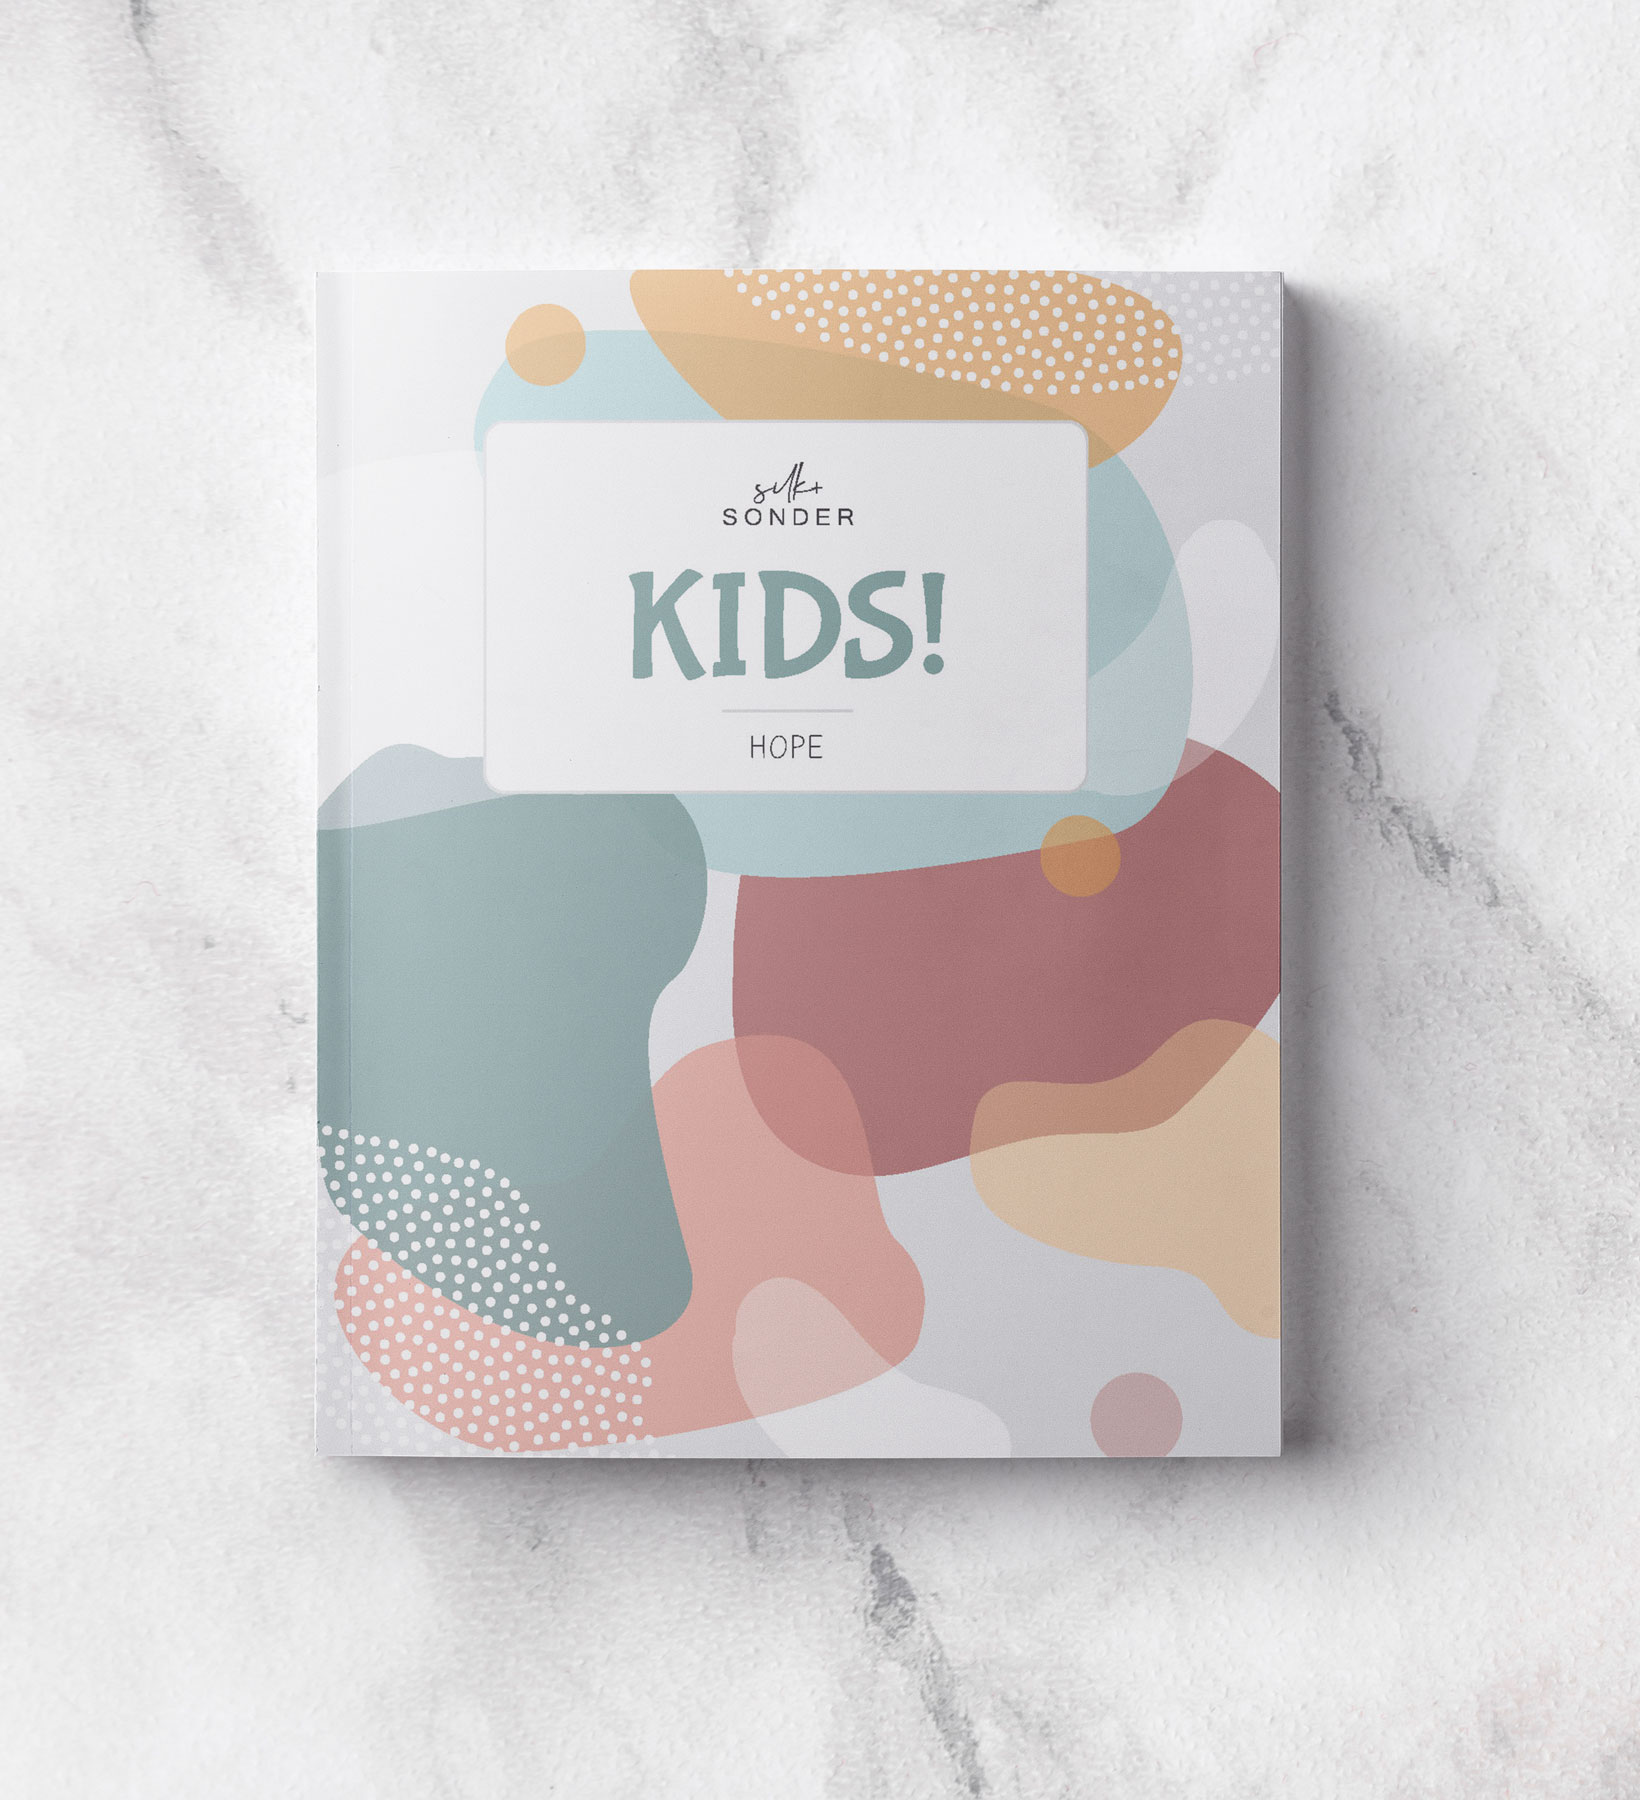 Best weekly, daily, monthly planners - Silk + Sonder Sonder Kids Monthly Subscription